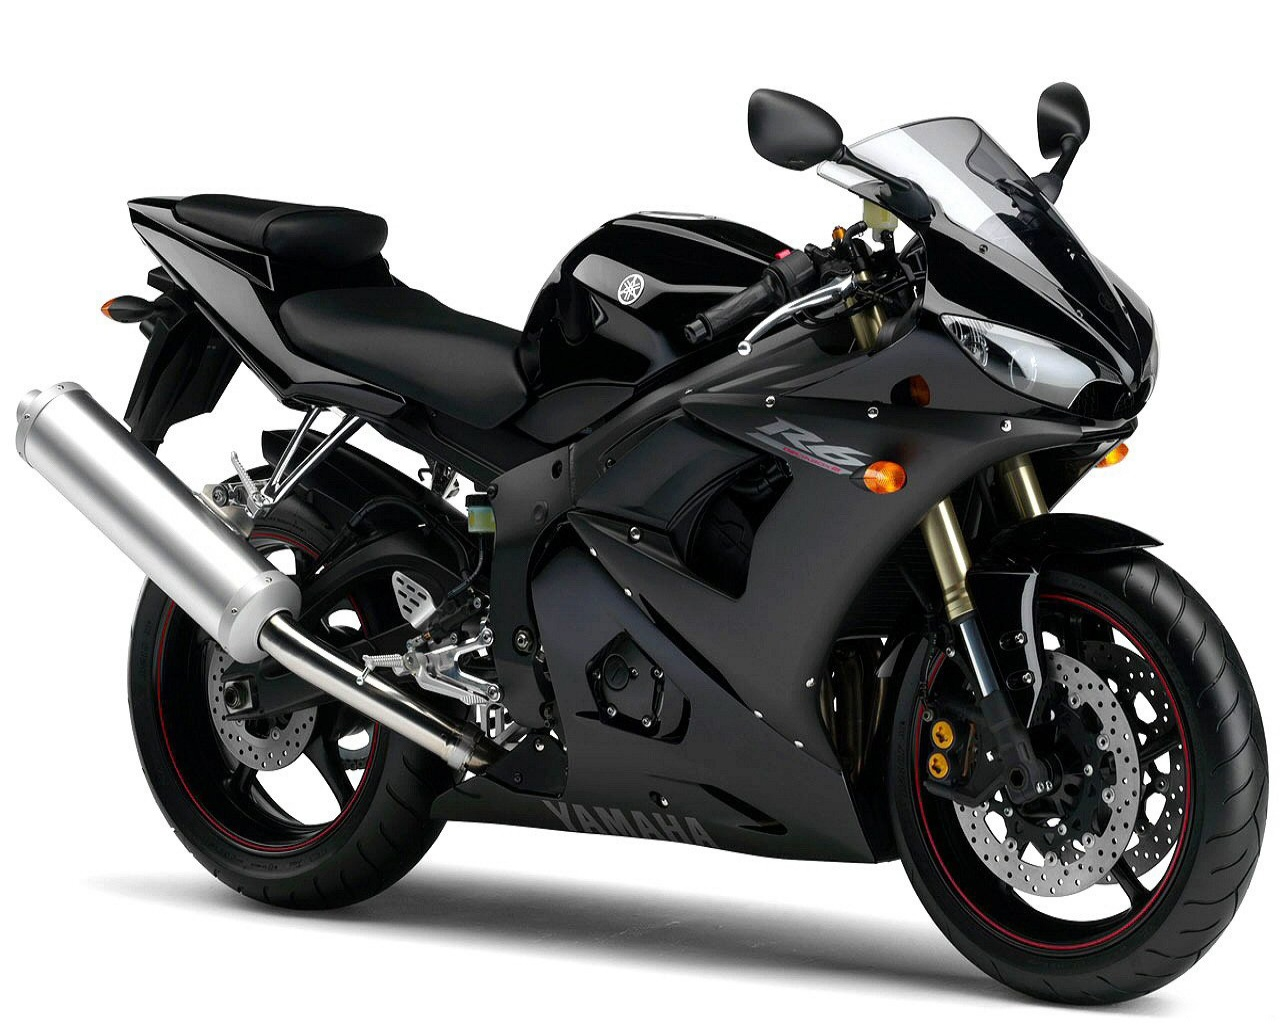 Yamaha R6 Sports Bike Wallpapers In Jpg Format For Free